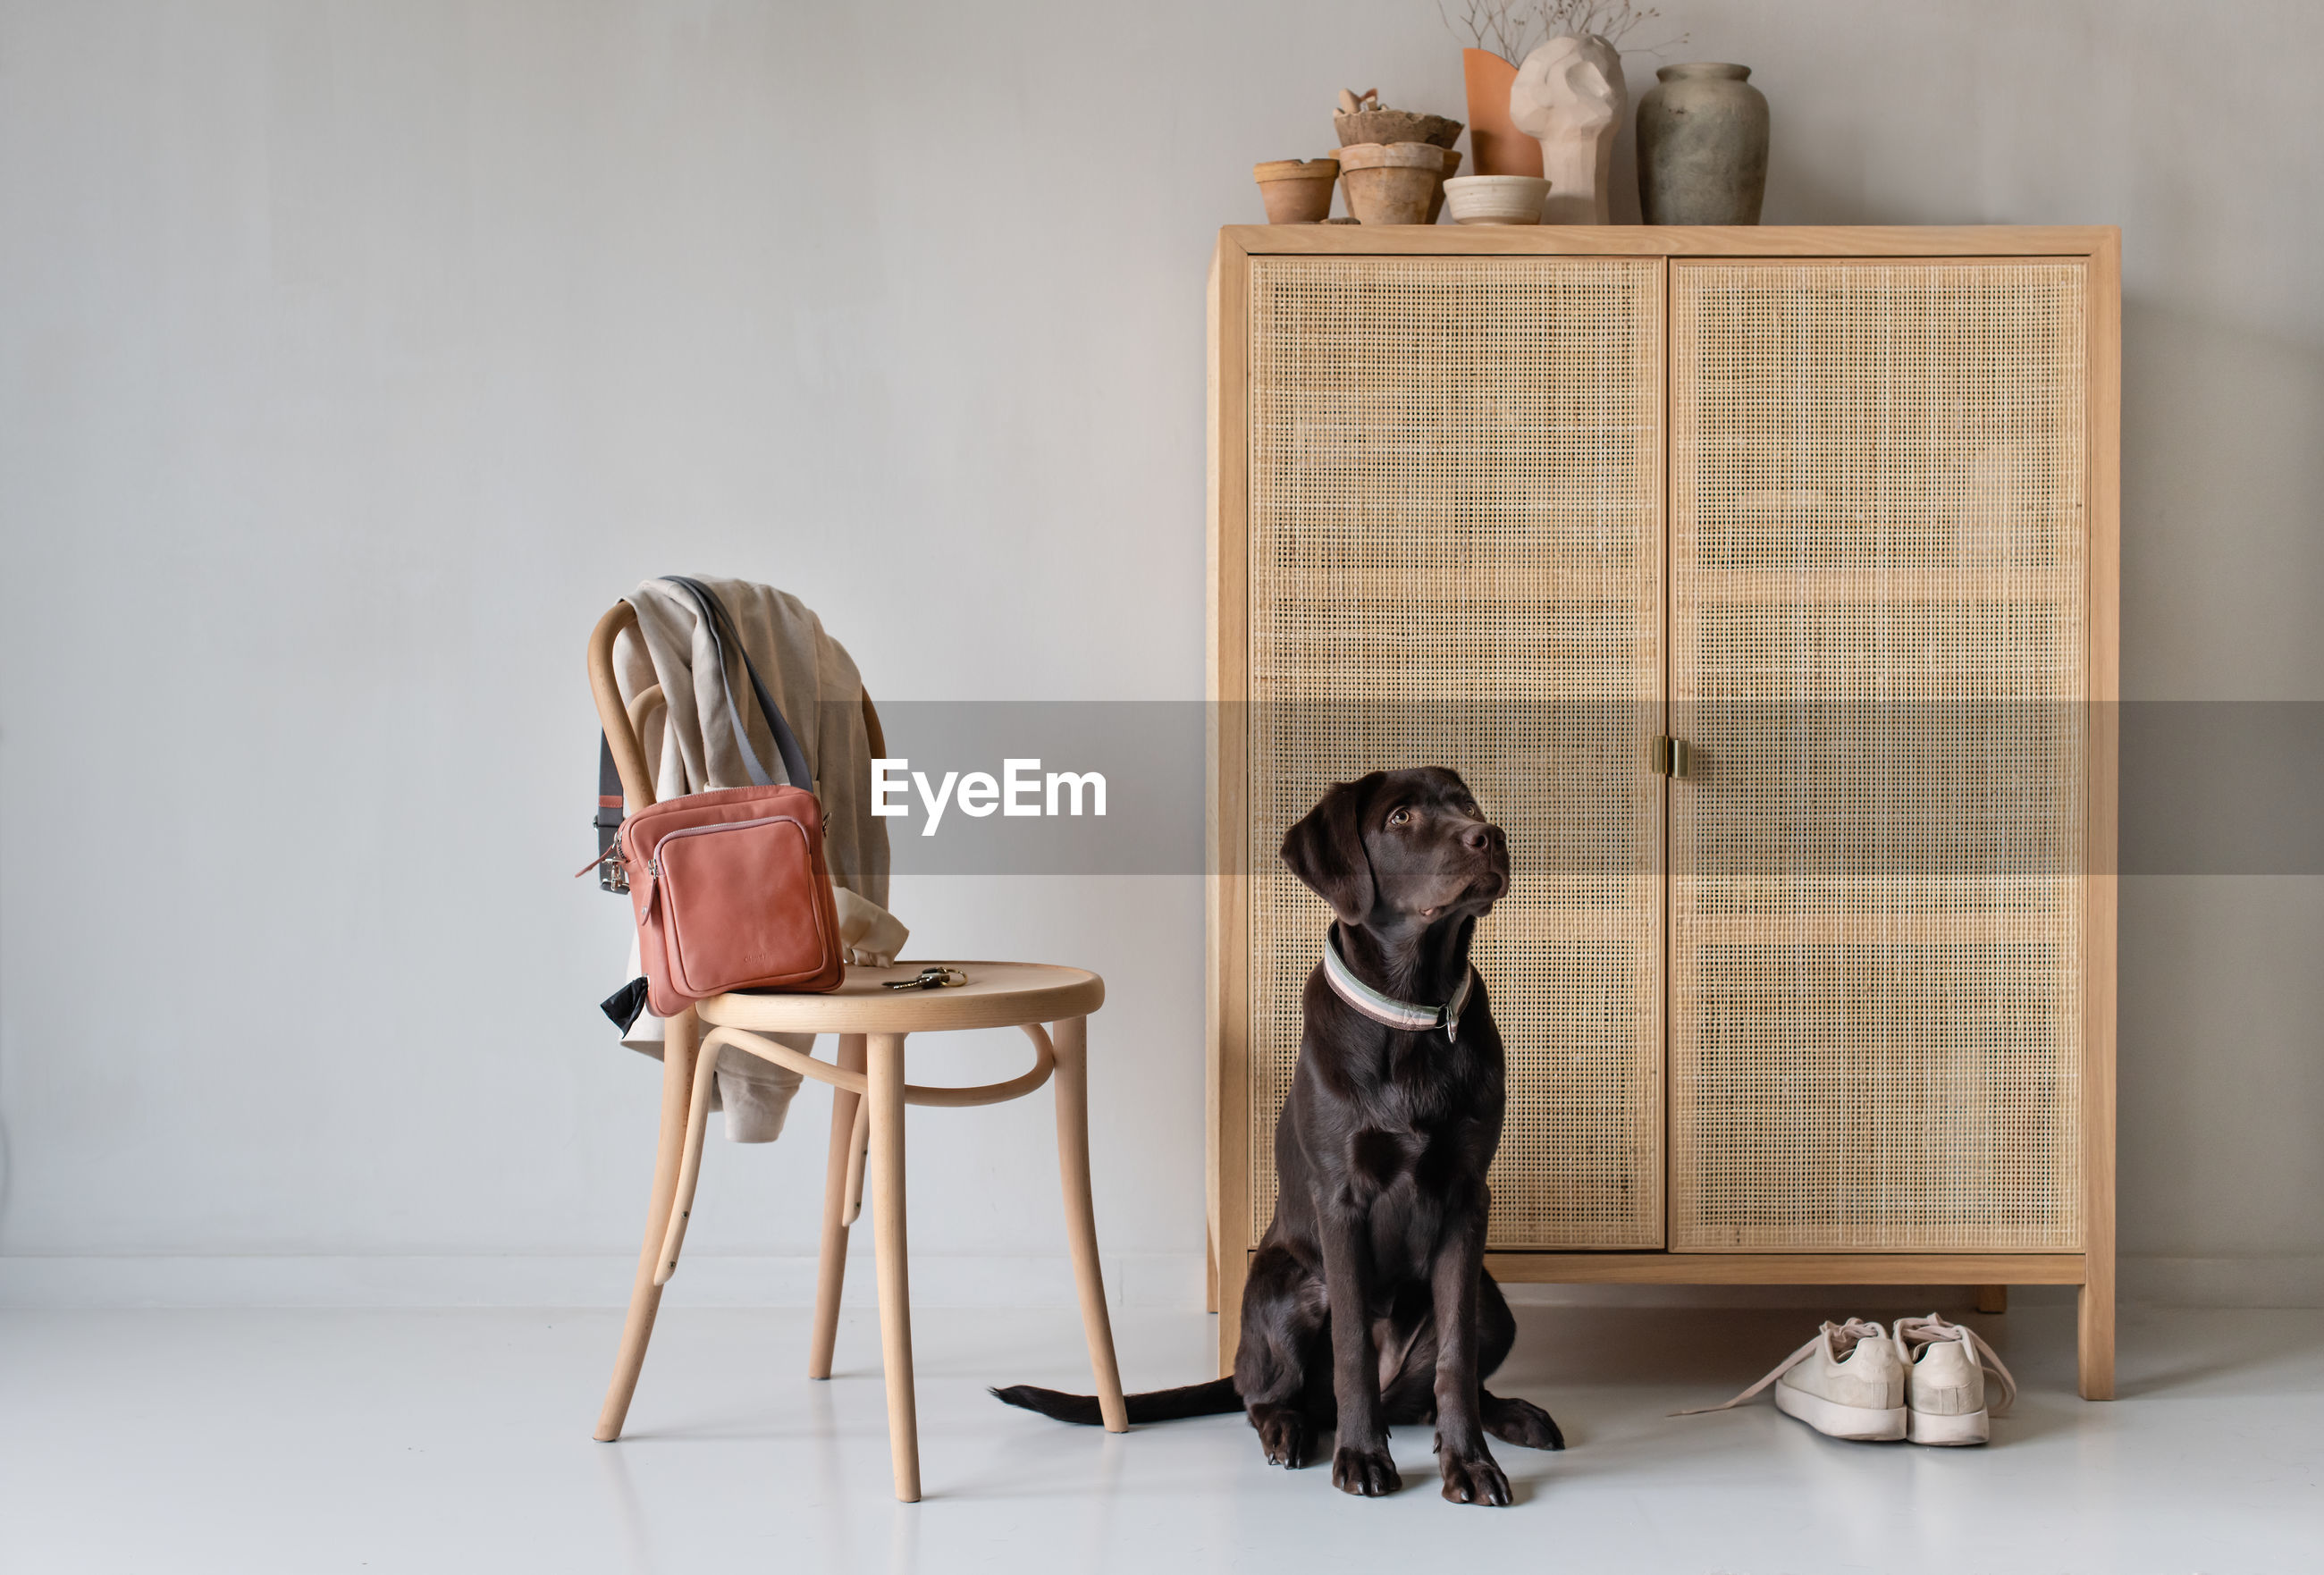 VIEW OF A DOG SITTING ON TABLE